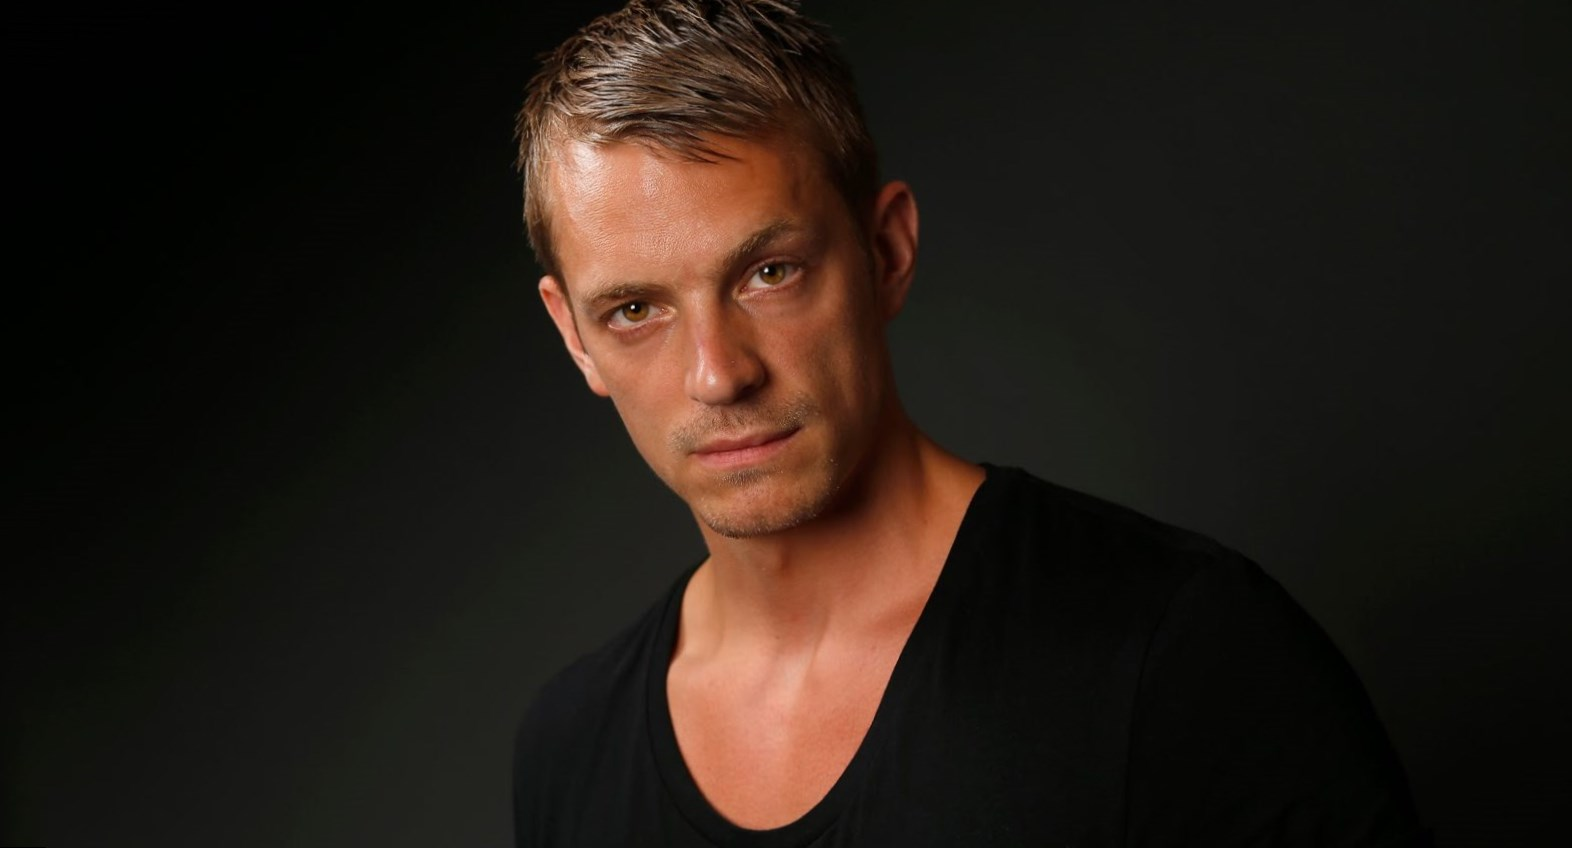 Joel Kinnaman - Height, Weight, Age